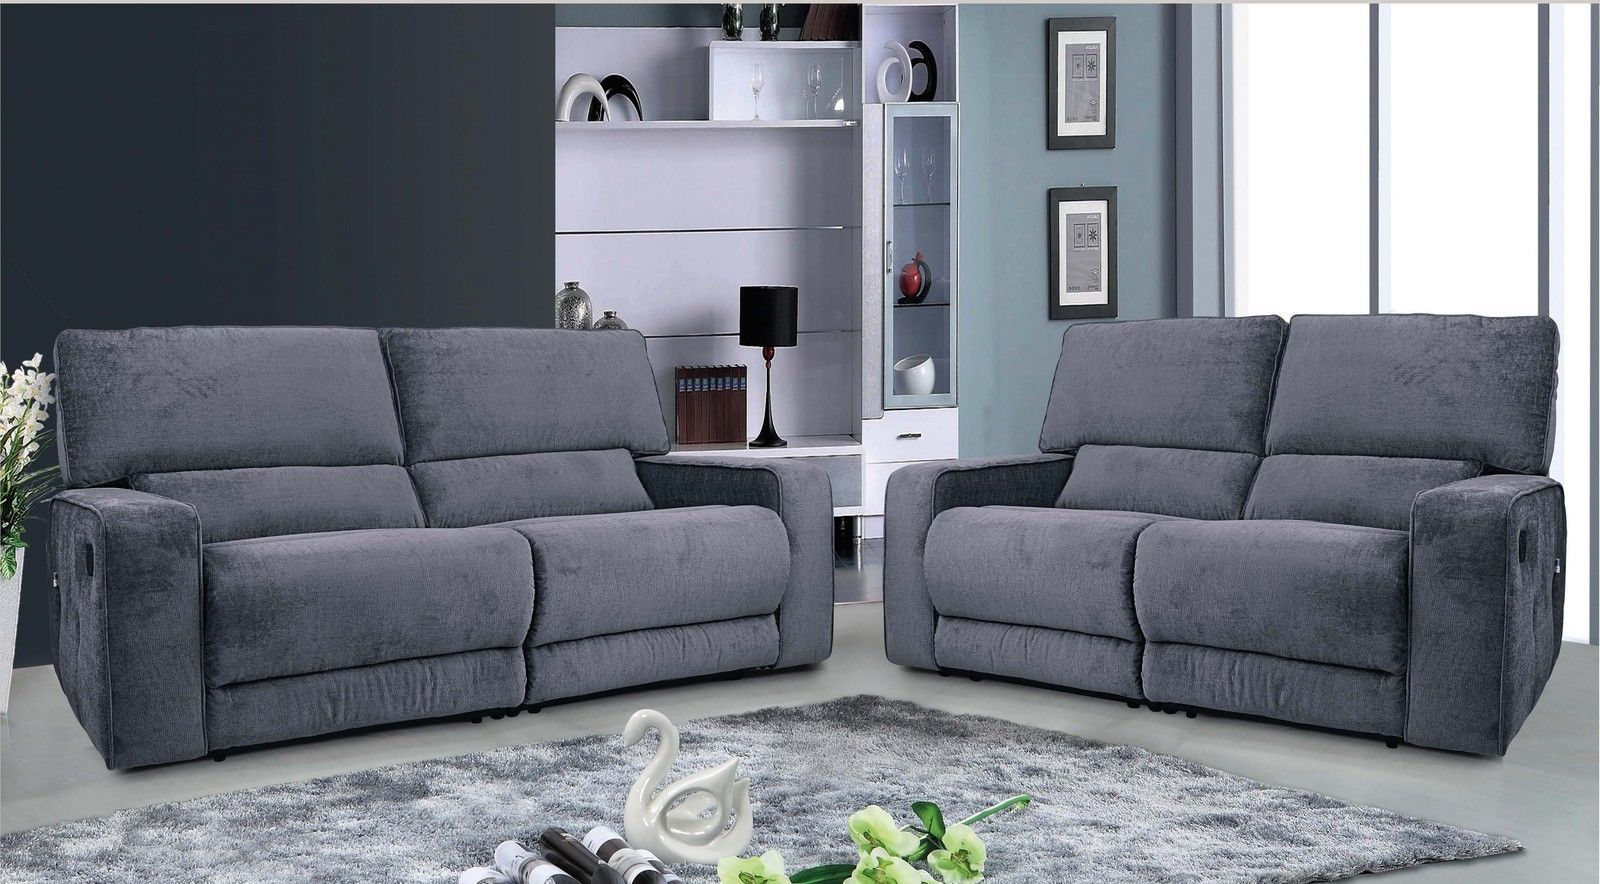 cool grey sleeper sofa picture-Best Grey Sleeper sofa Image